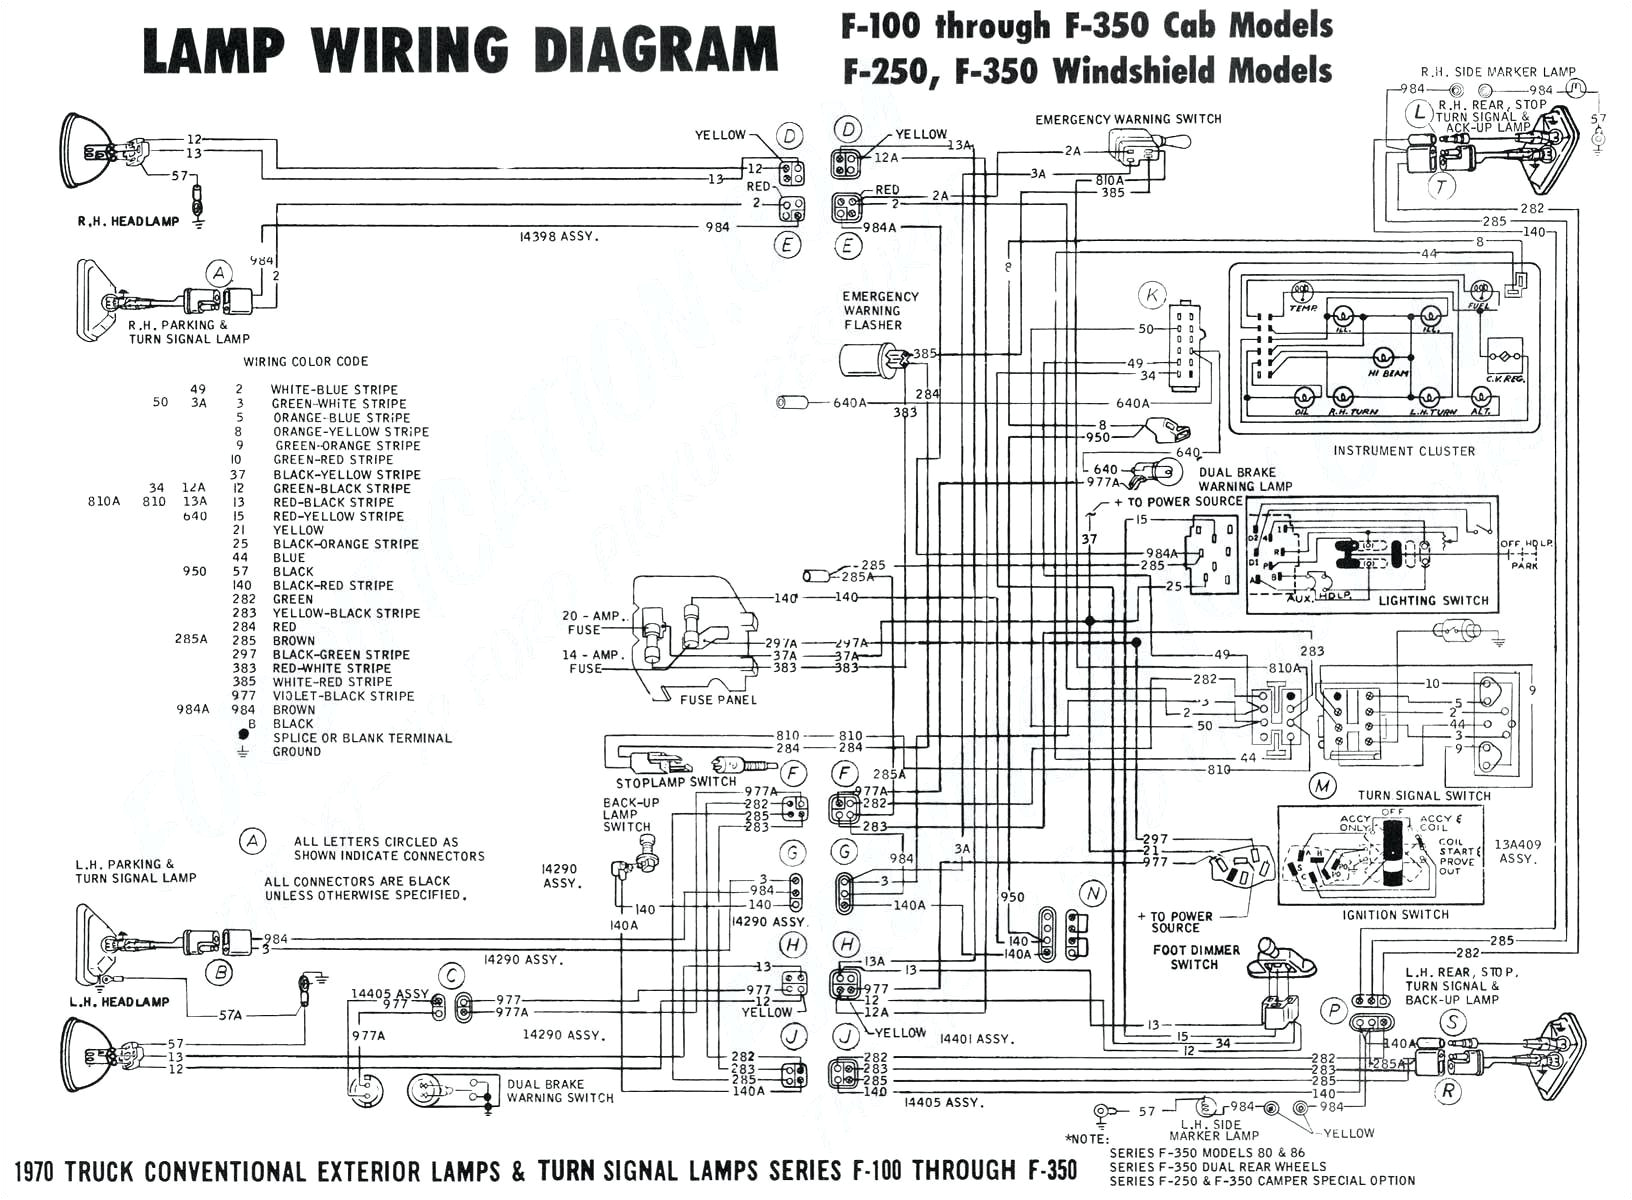 1994 ford f150 wiring diagram best of 05 expedition radio wiring radio wiring diagram 94 ford f 150